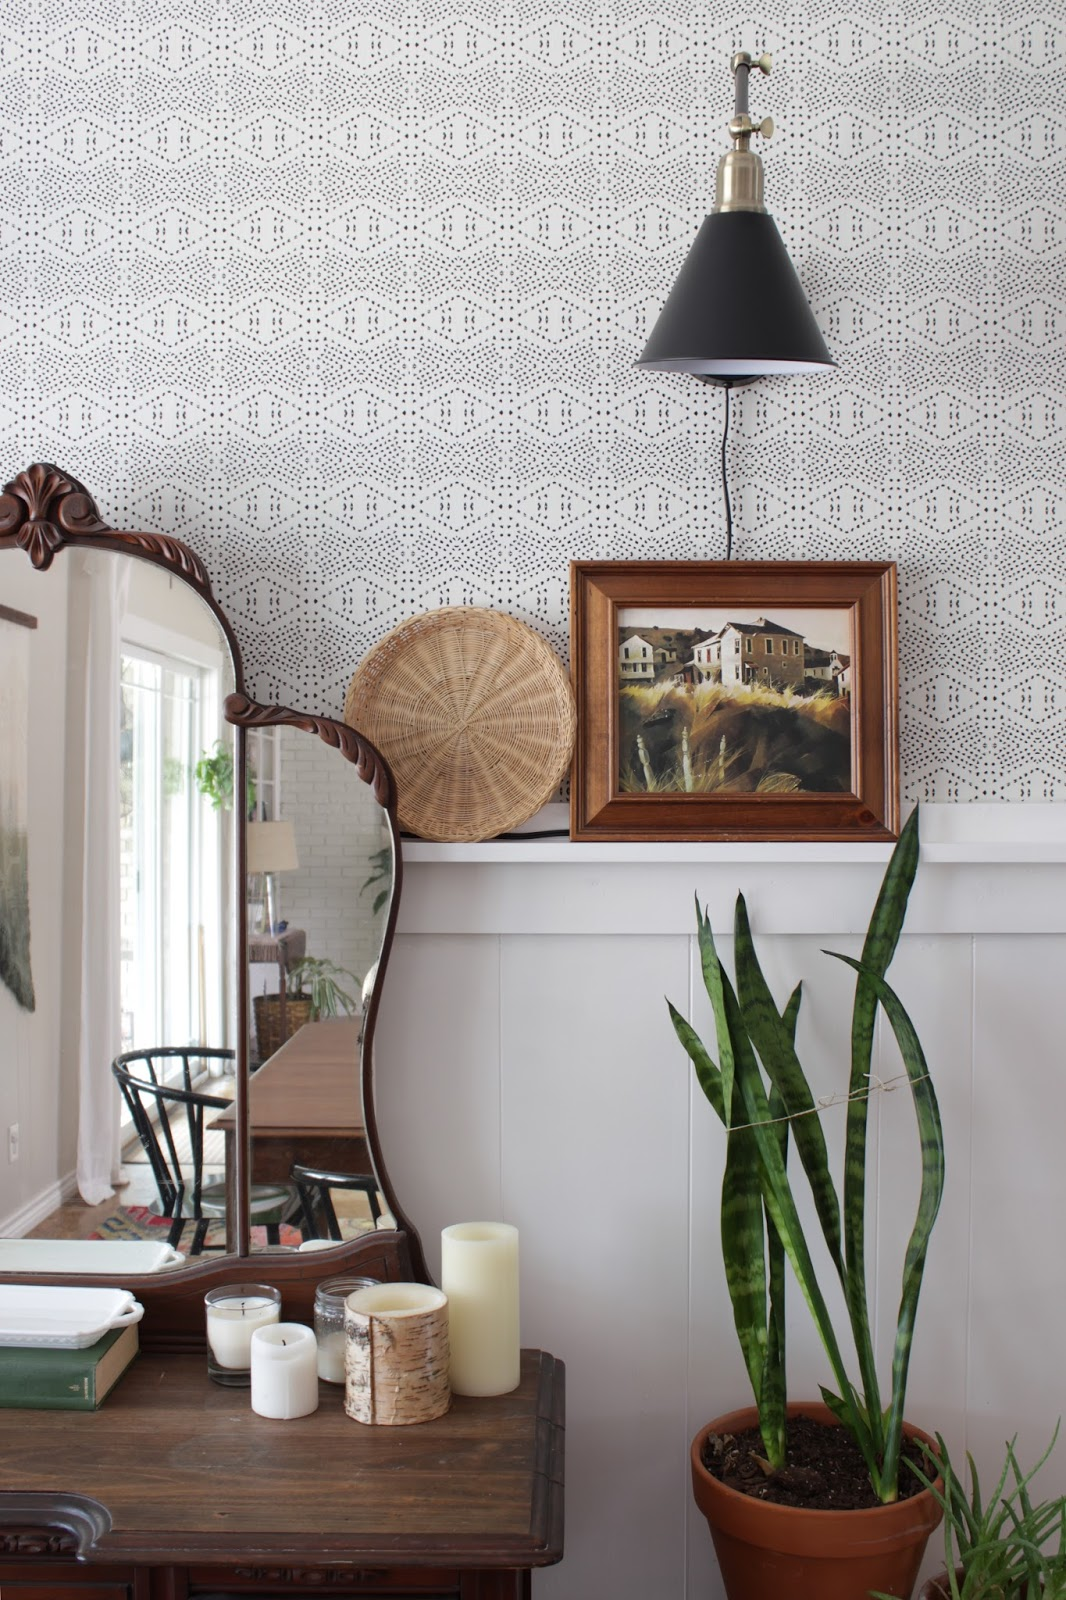 15 Wallpaper Projects to Kickstart your Fixer Upper | Spoonflower Blog